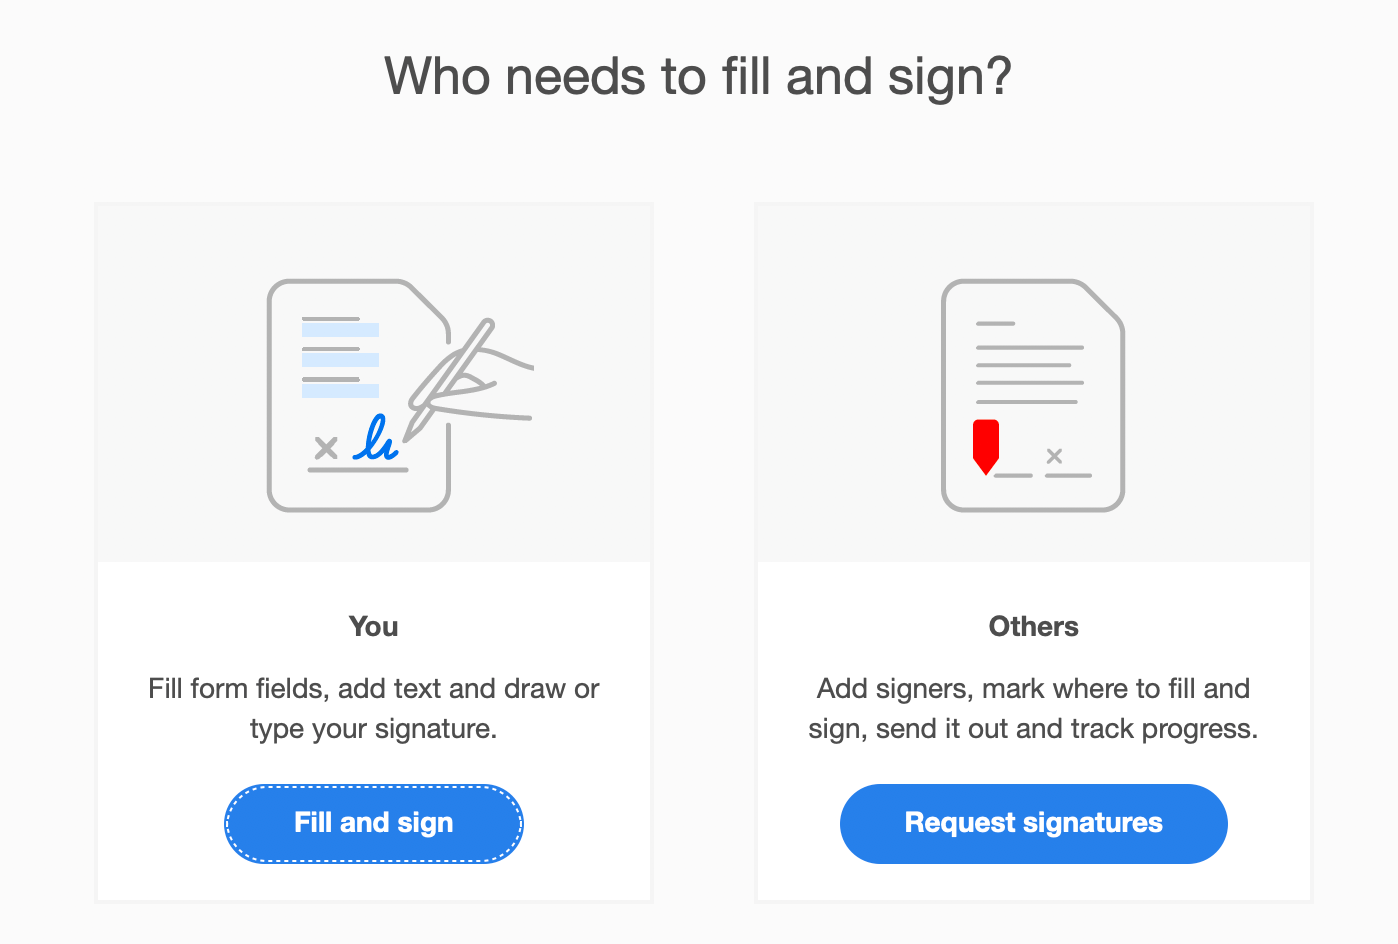 Who needs to fill and sign?